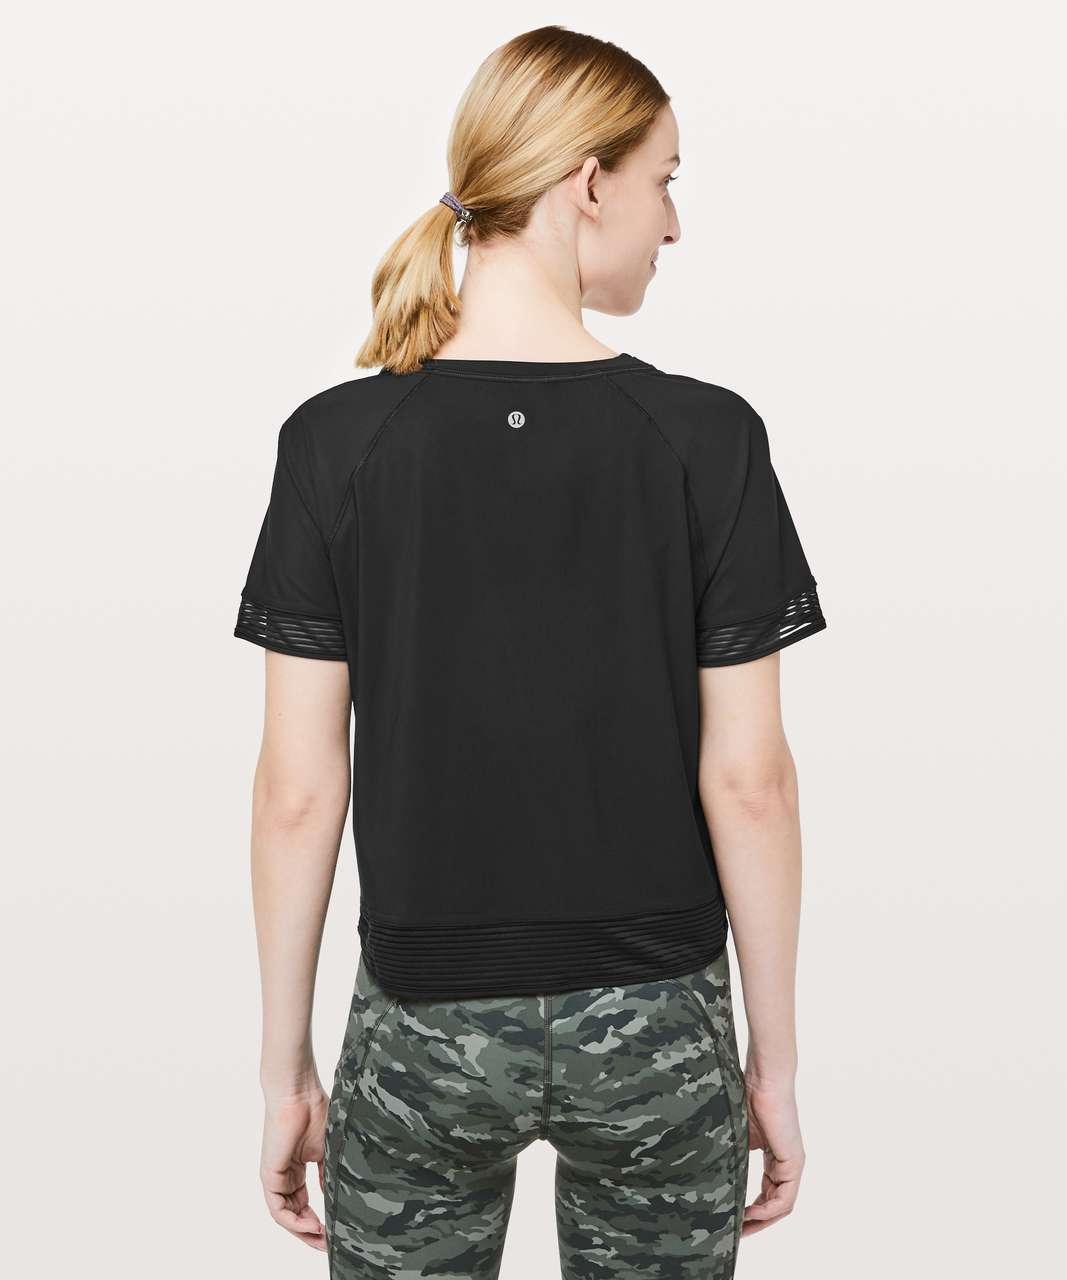 Lululemon Stripe In Stride Short Sleeve - Black